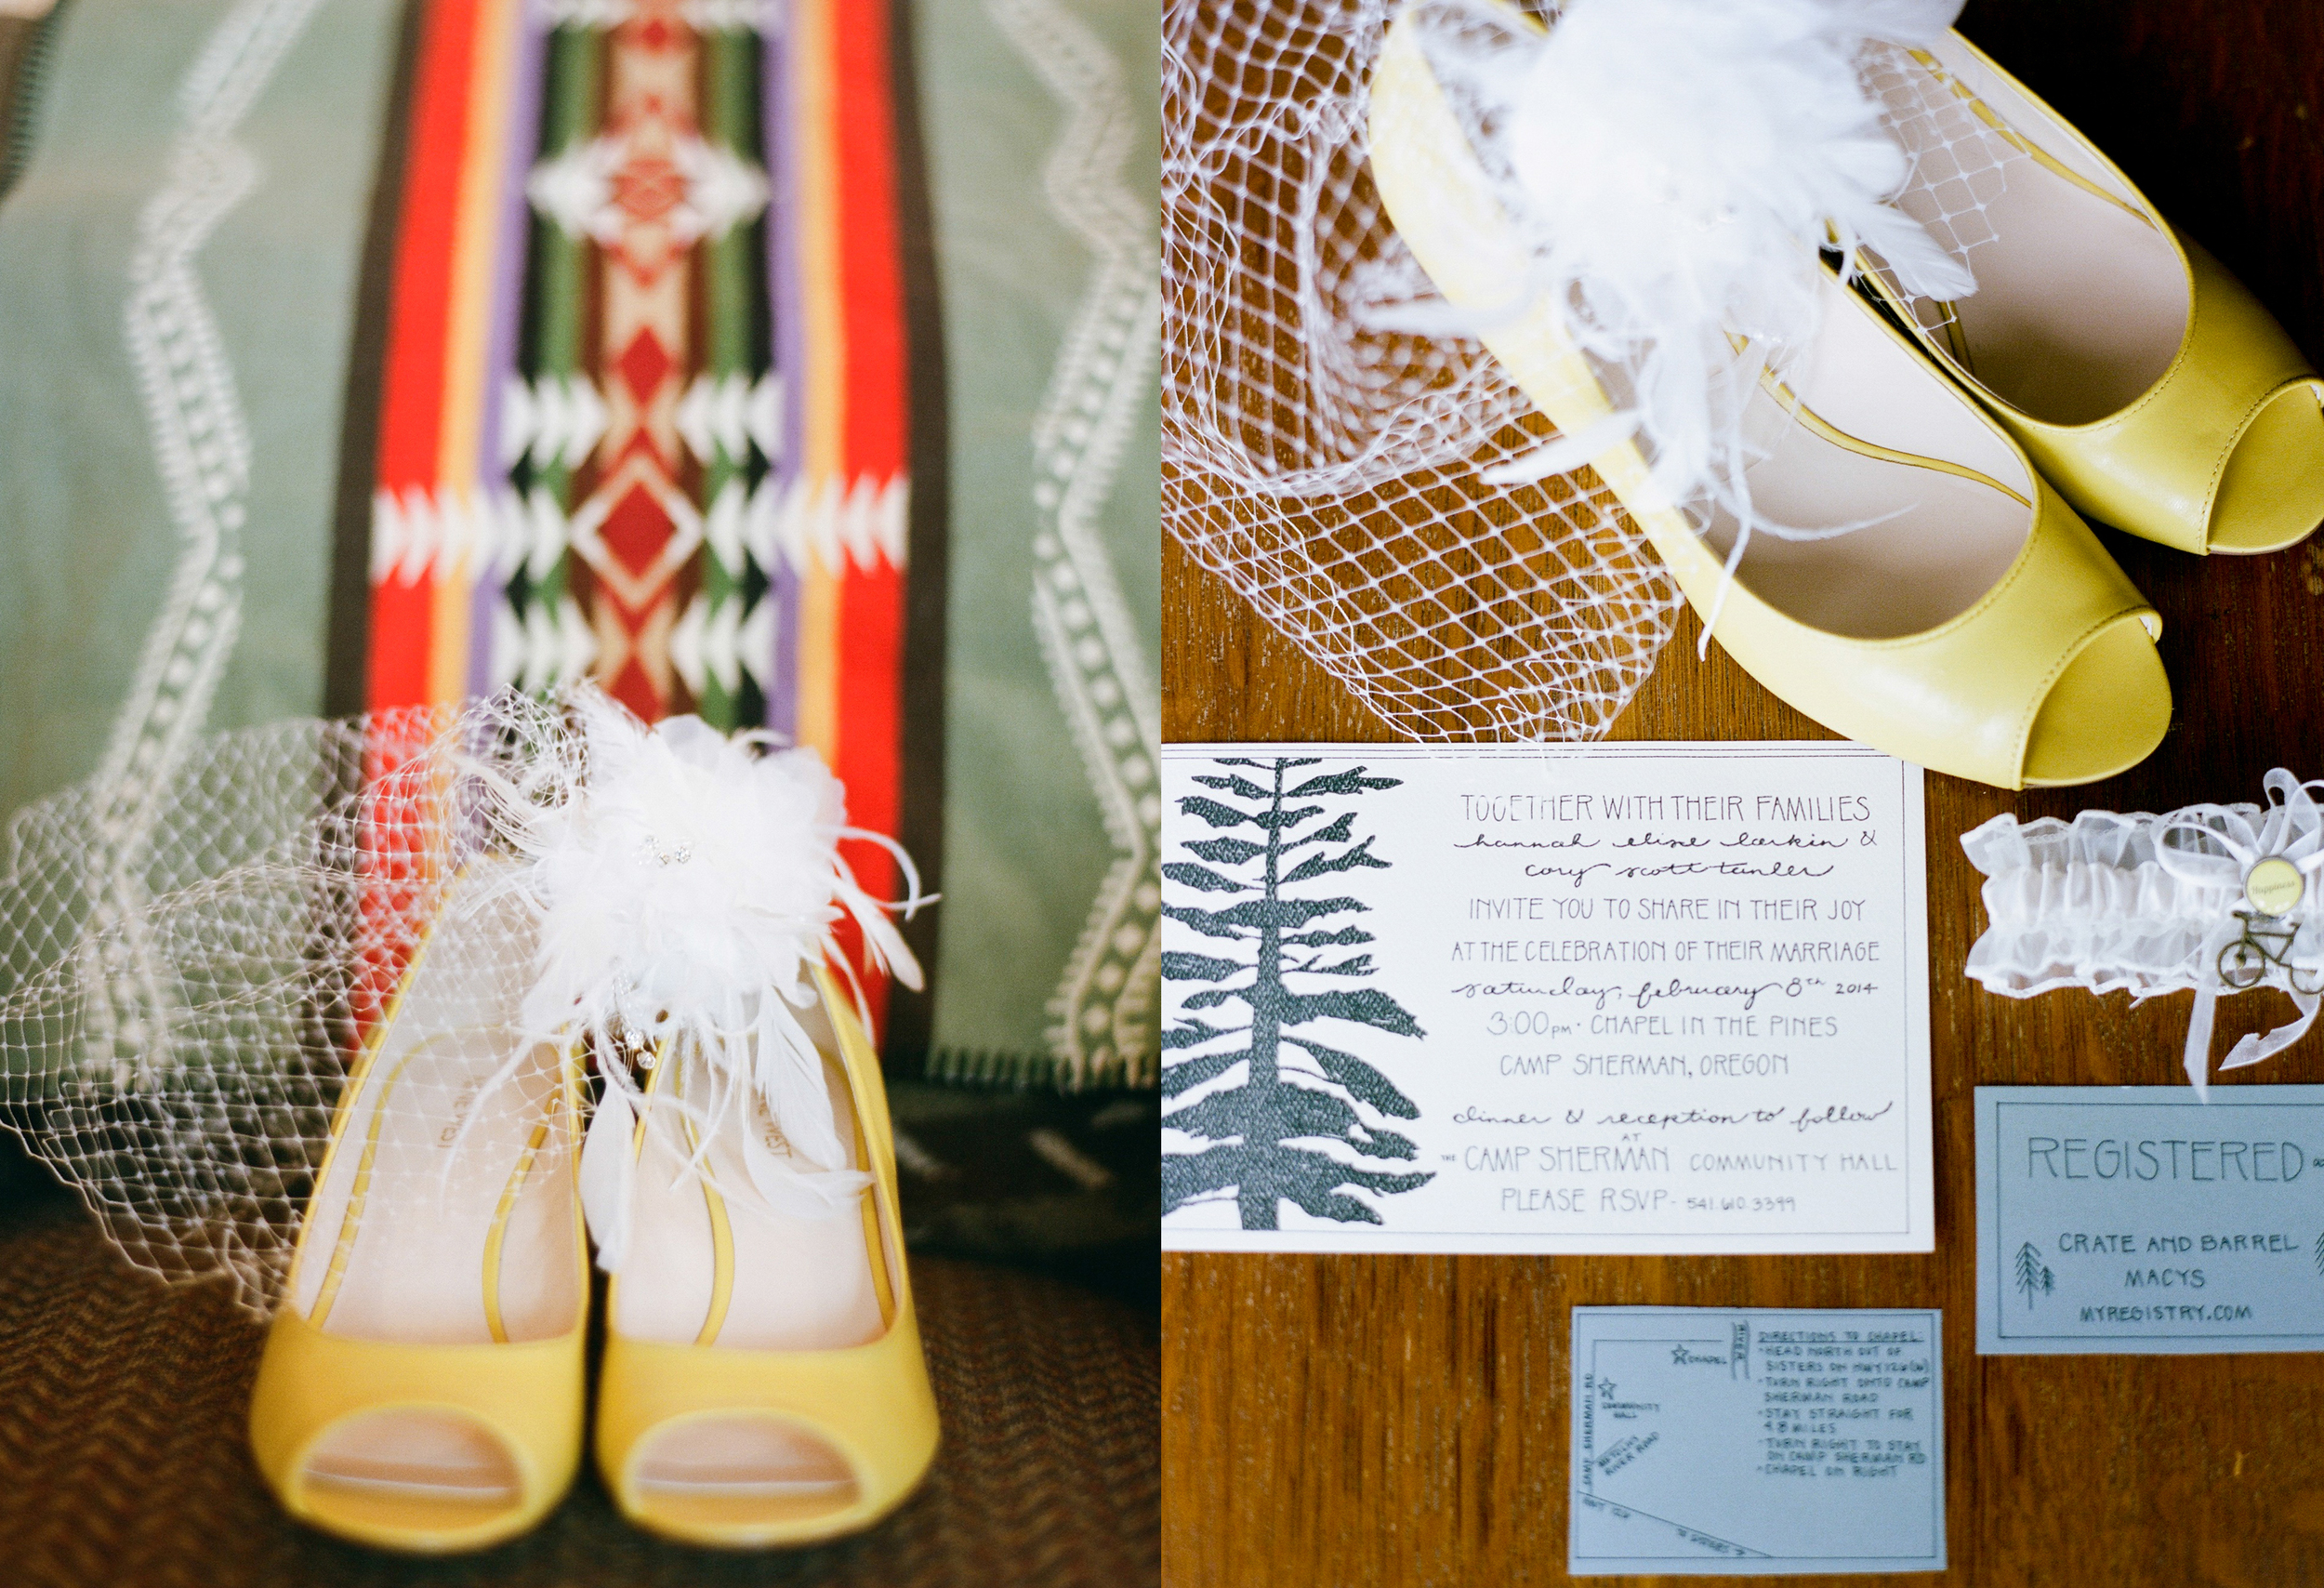 Camp Sherman Wedding-1.jpg